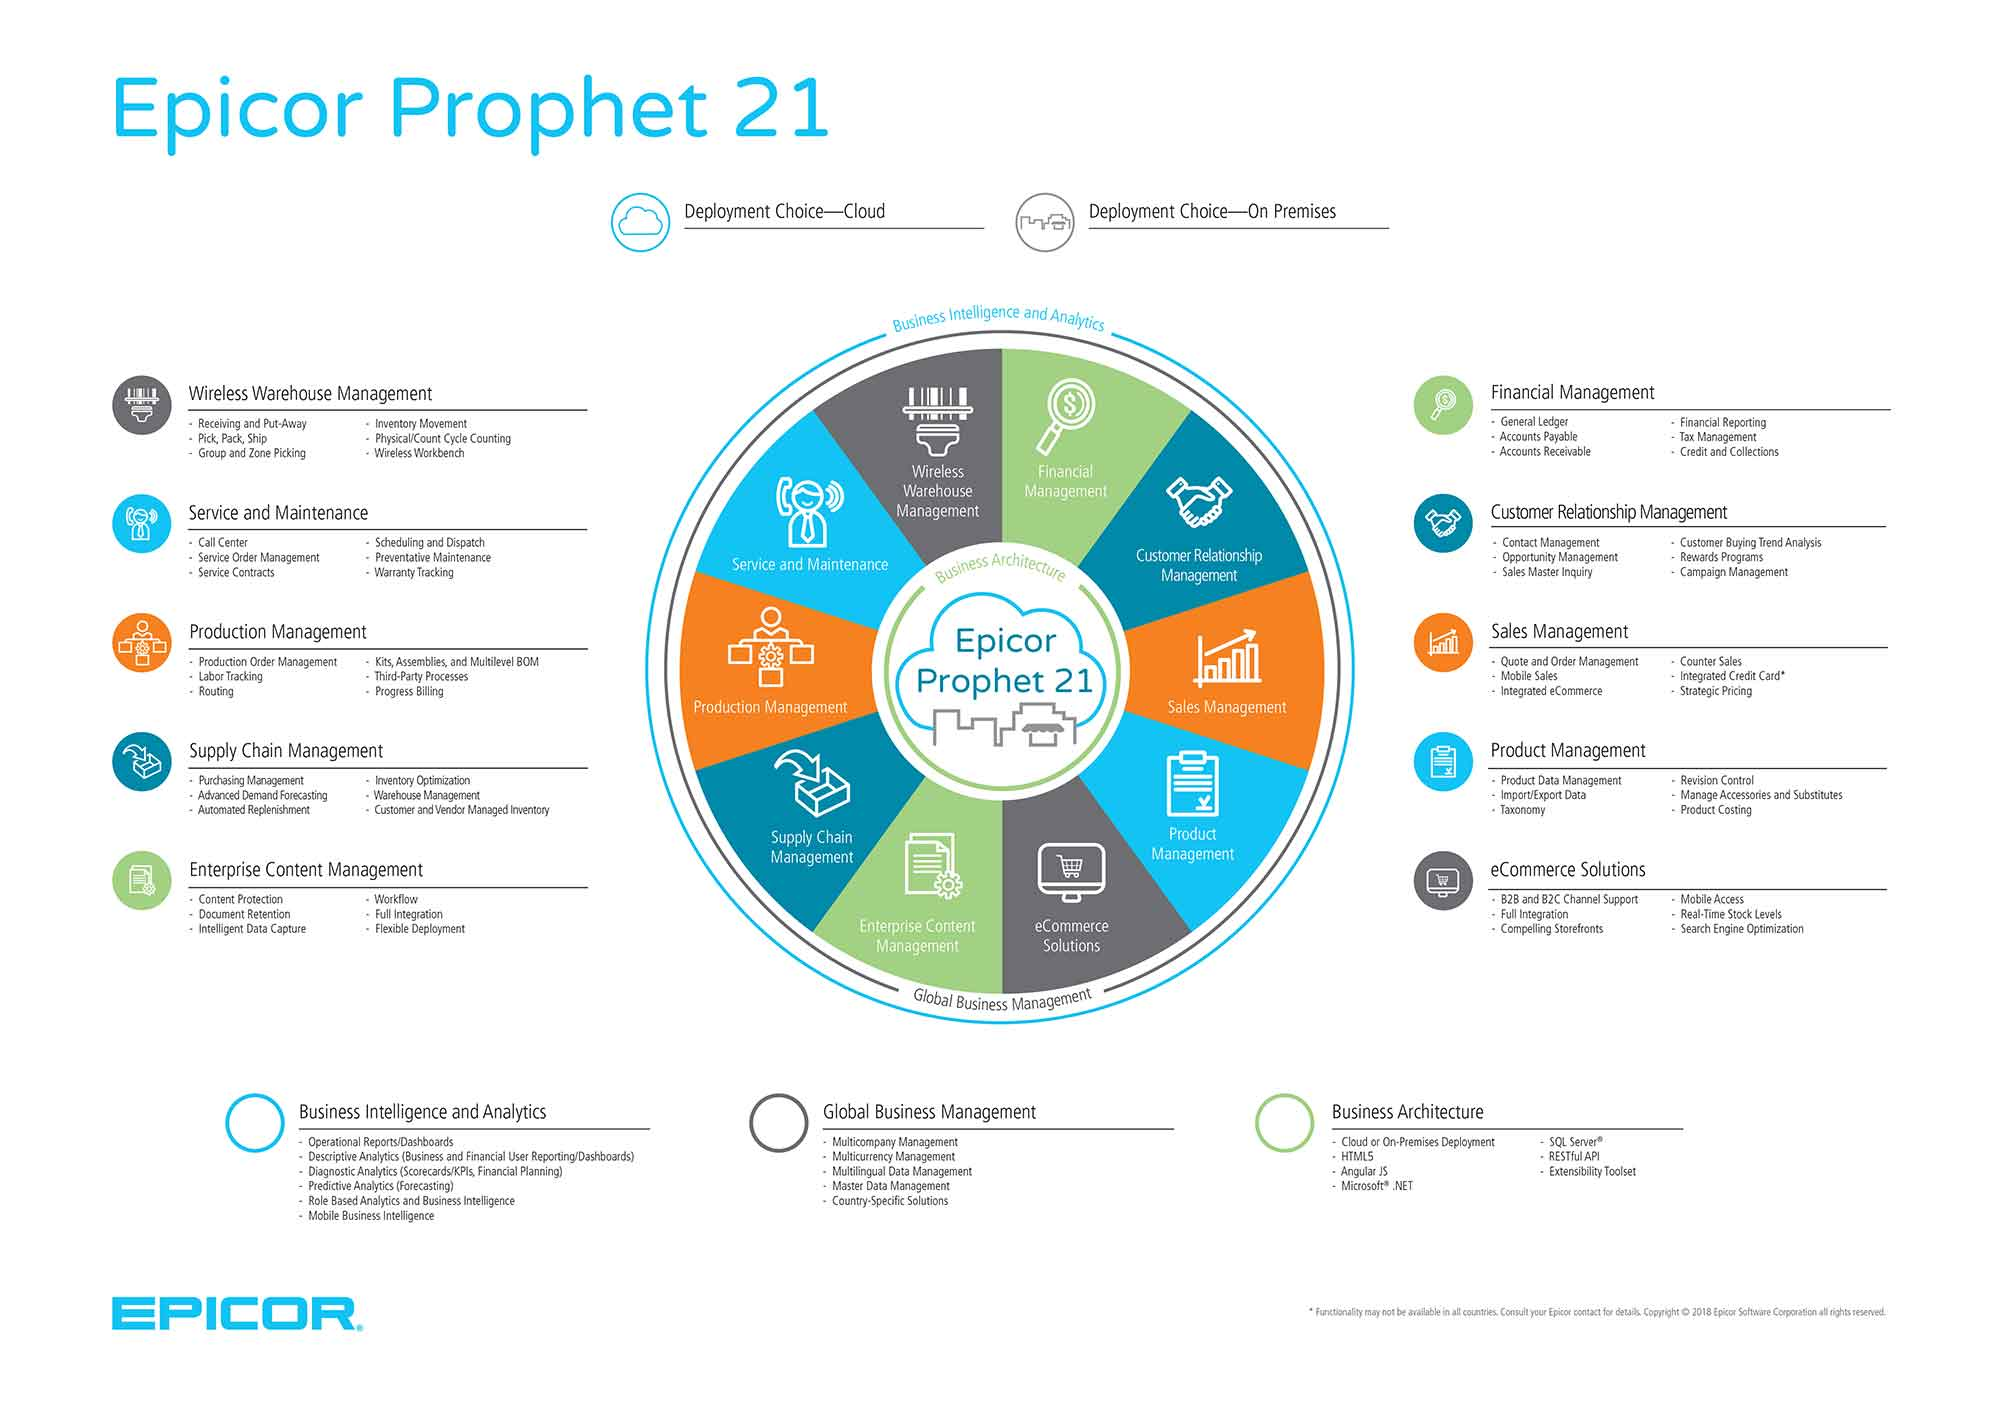 an image of the complete epicor prophet 21 software overview erp for distributors